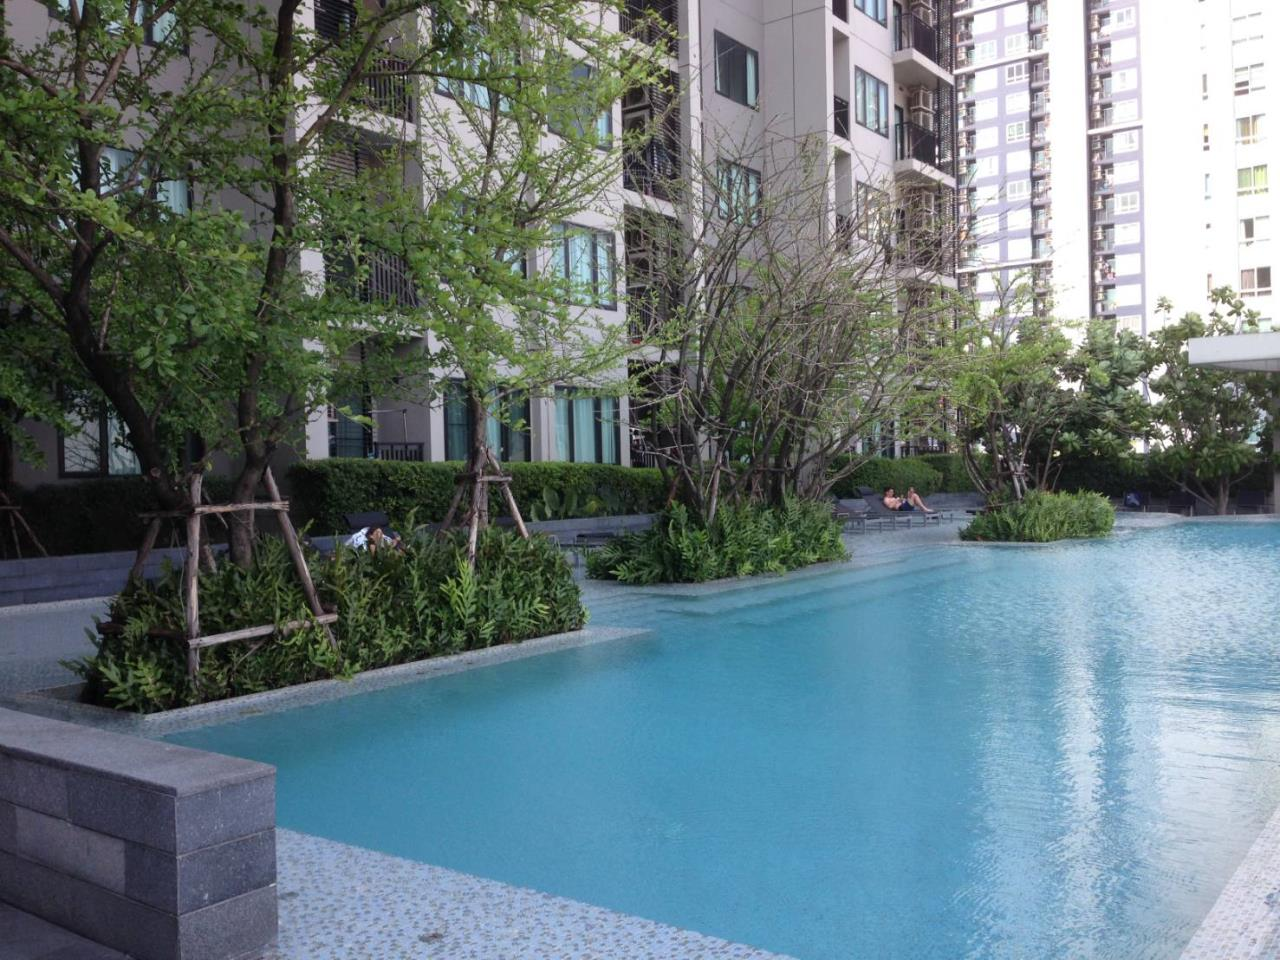 Quality Life Property Agency's S A L E / R E N T !! || Blocs 77 || 1Br 40 Sq.m. High floor Canal view 7